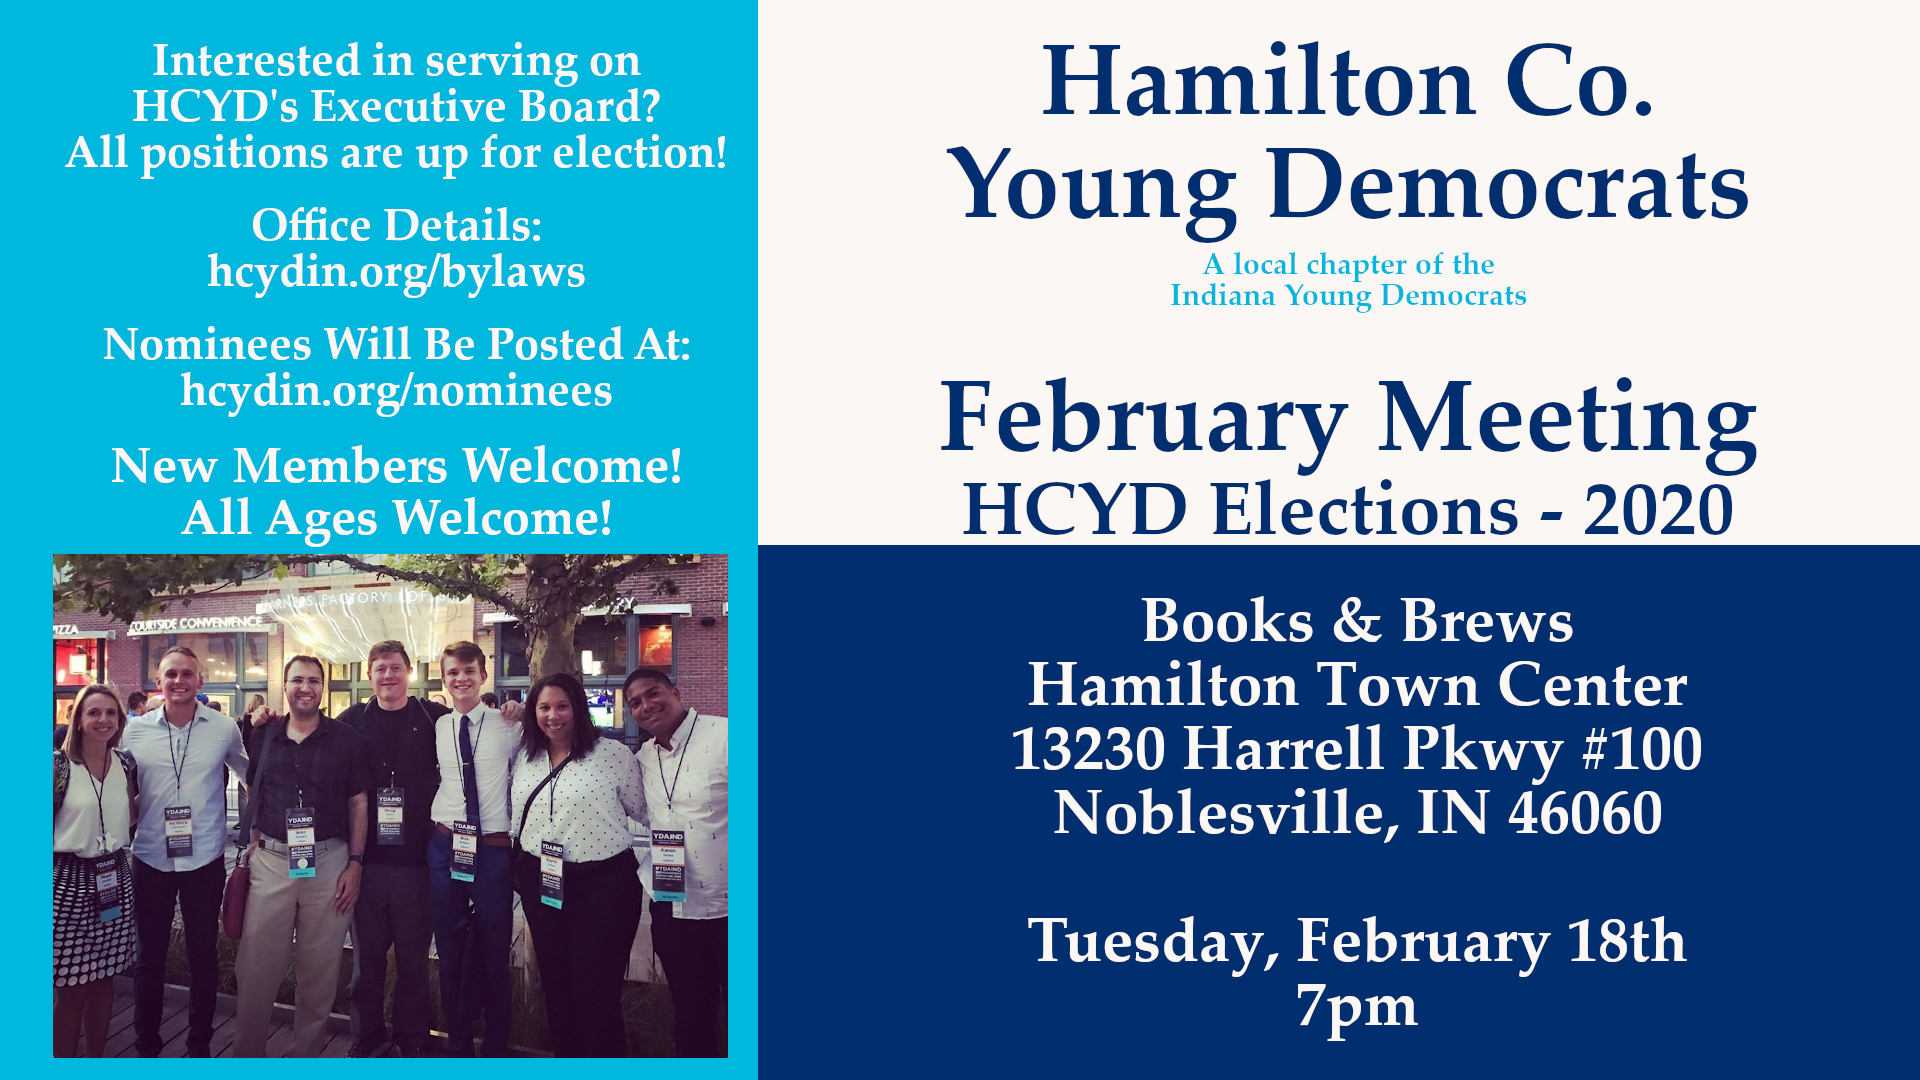 February Meeting Officer Election Noblesville Books Brews Hamilton Town Center Hamilton County Young Democrat 2020